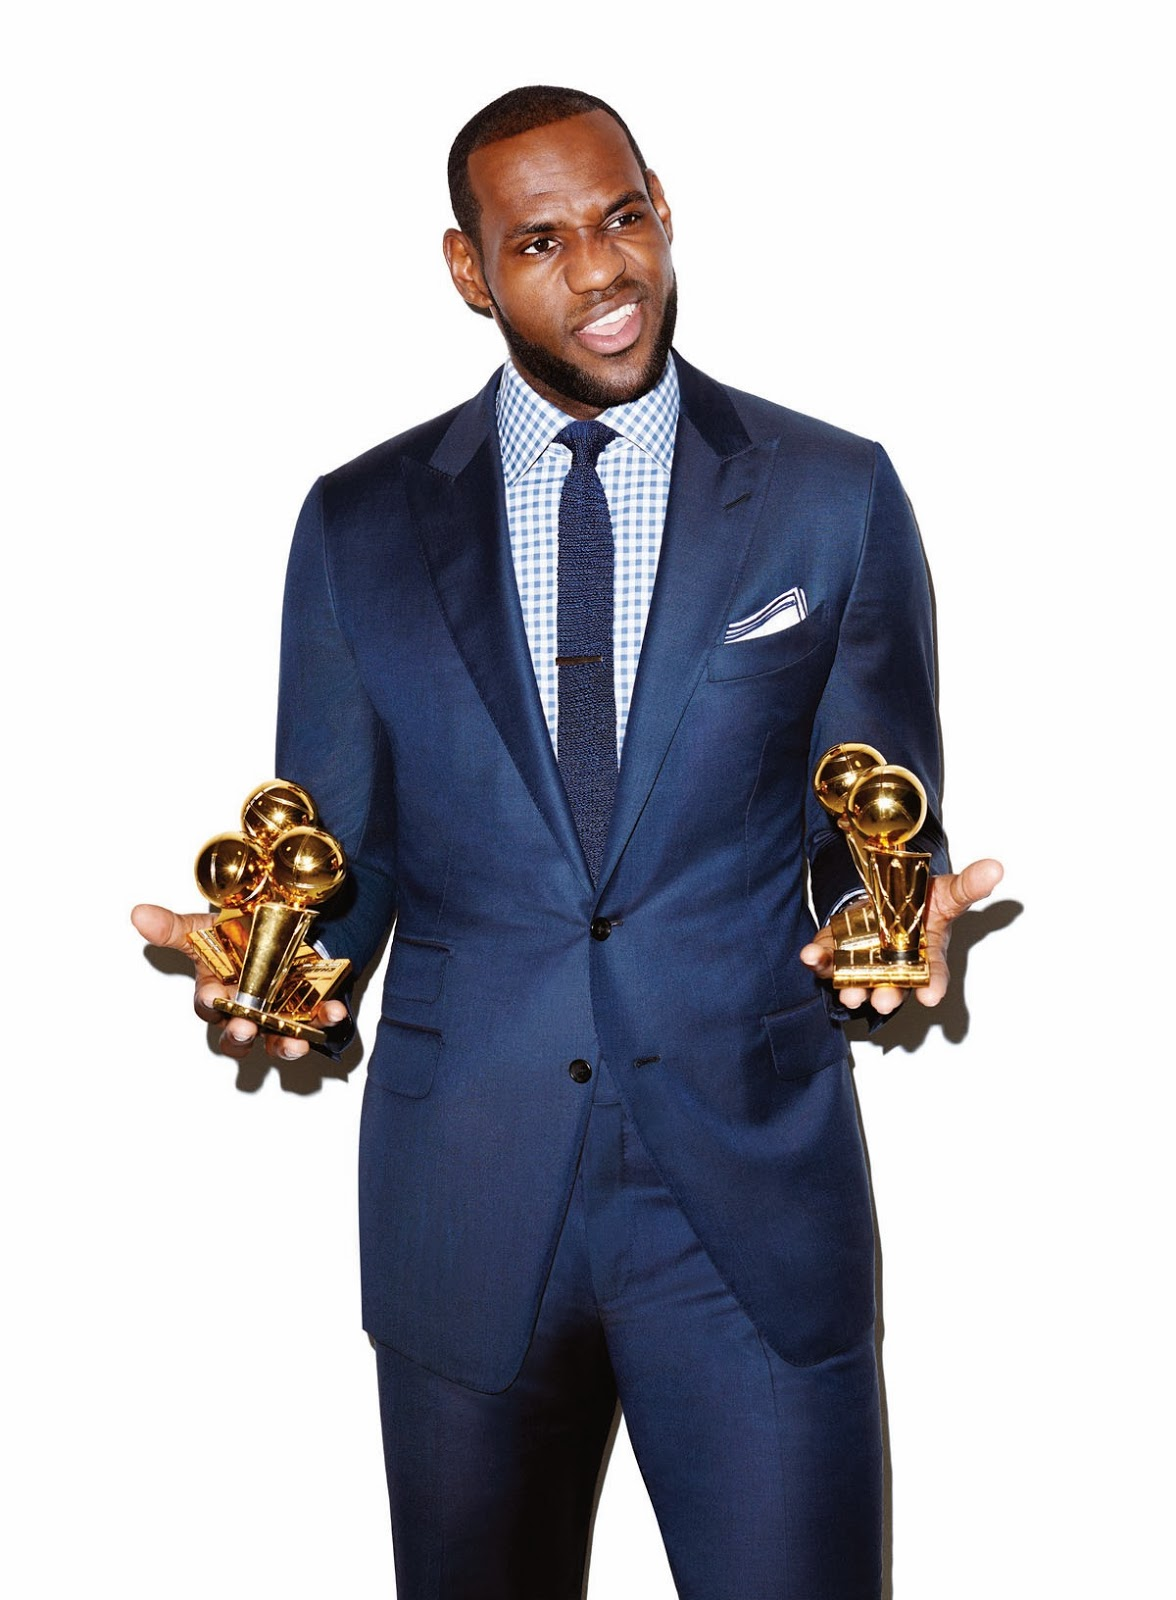 Lebron James Cover Editorial GQ USA March 2014 by Terry Richardson (5)